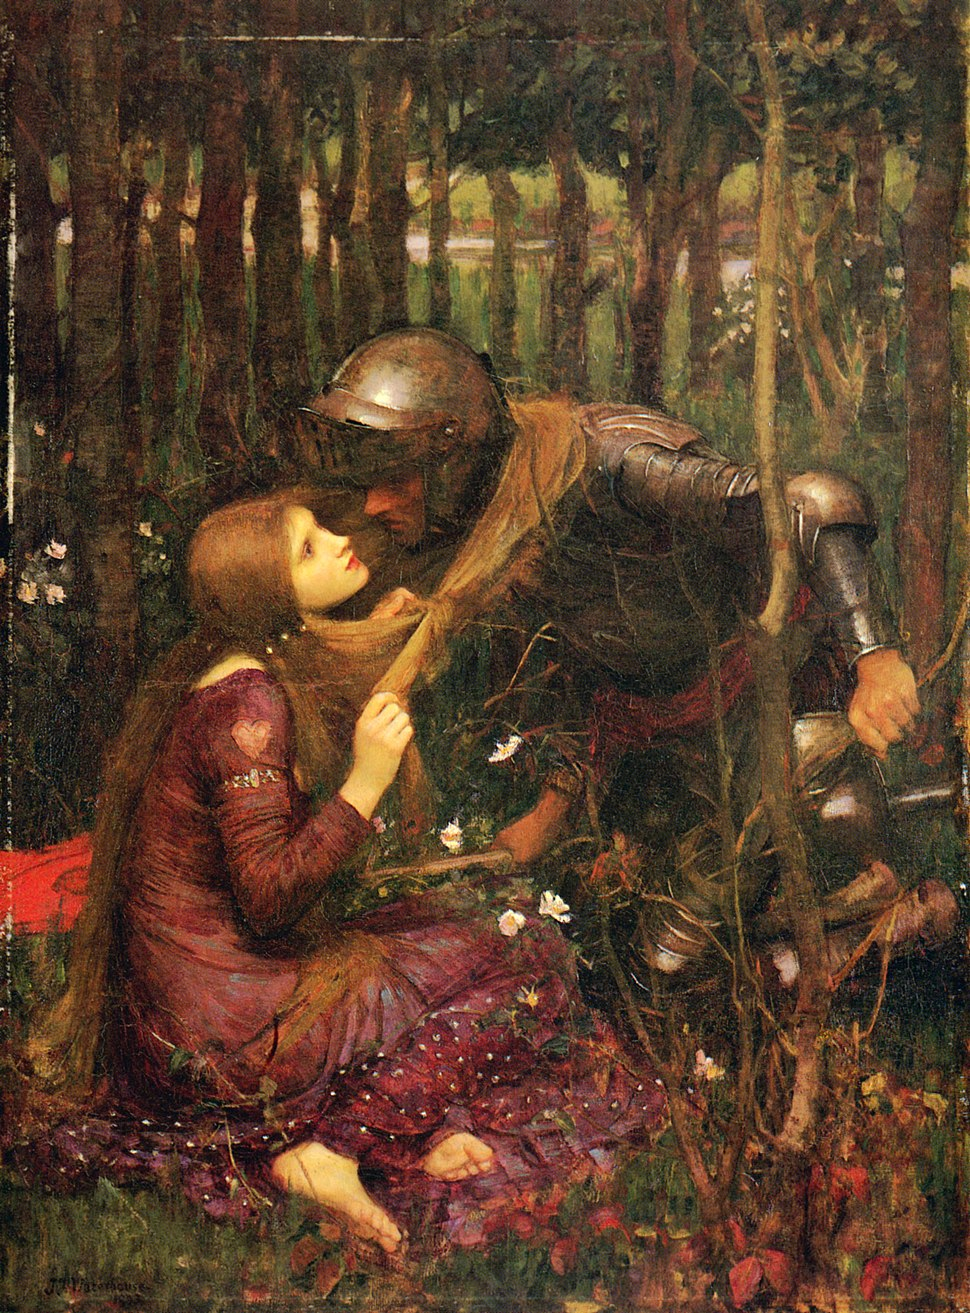 John William Waterhouse - La Belle Dame sans Merci (1893)